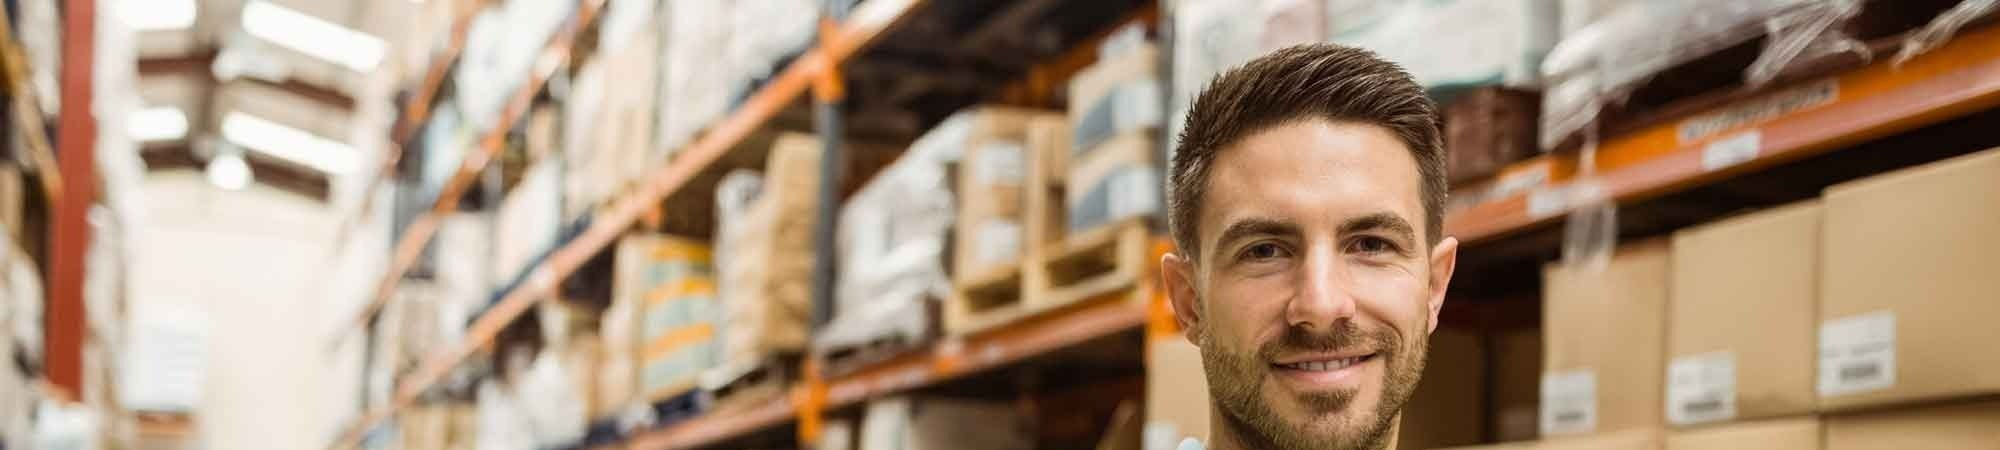 smiling man in warehouse